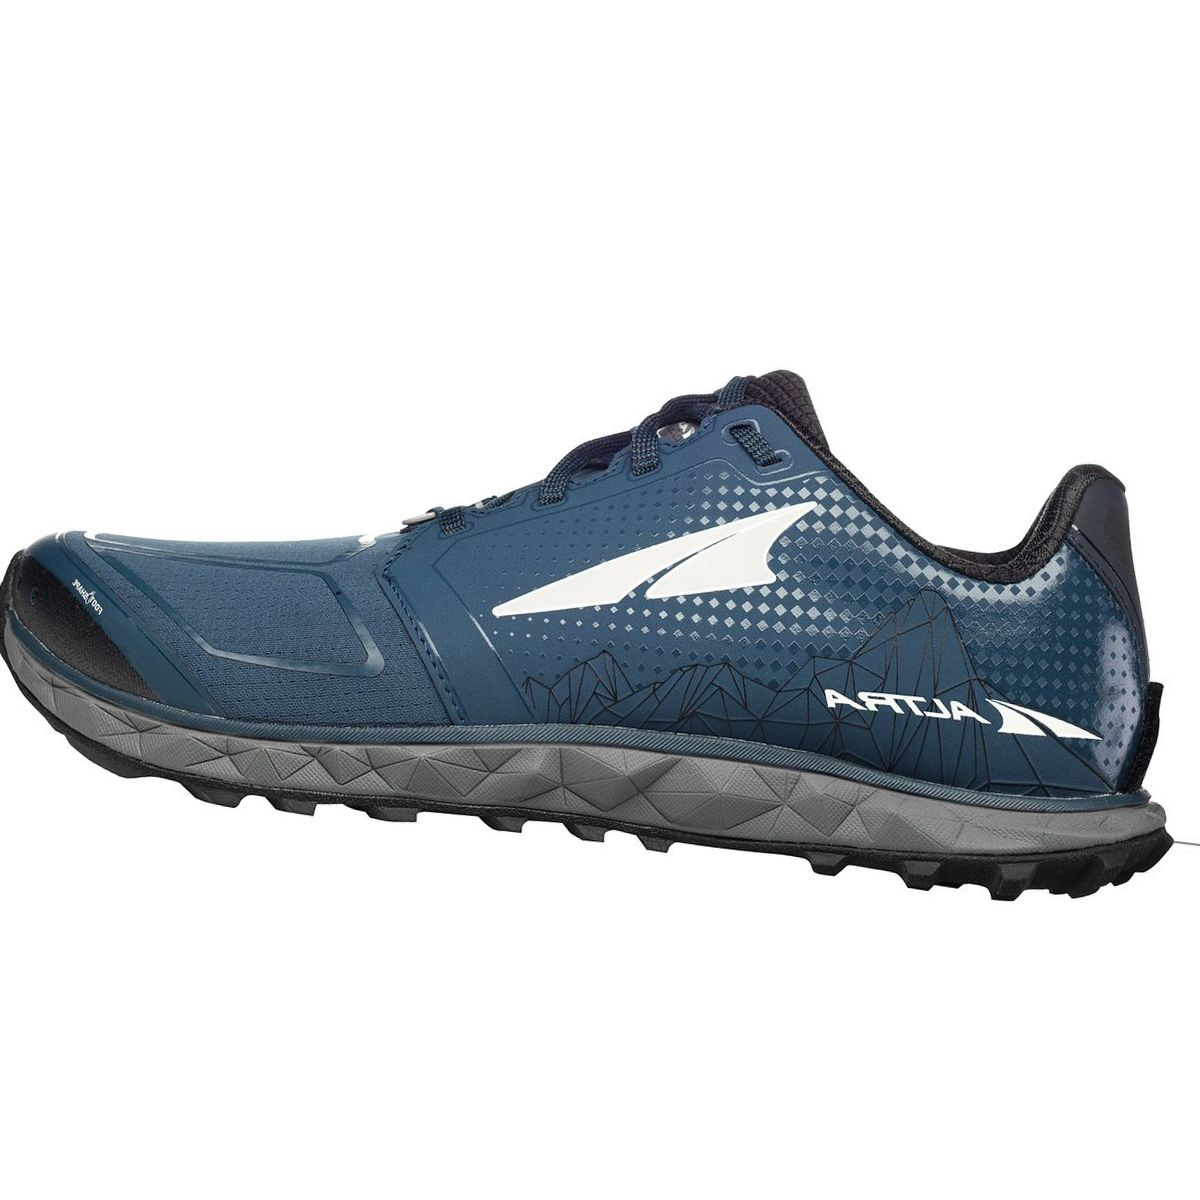 Altra Superior 4.0 Trail Running Shoe - Men's